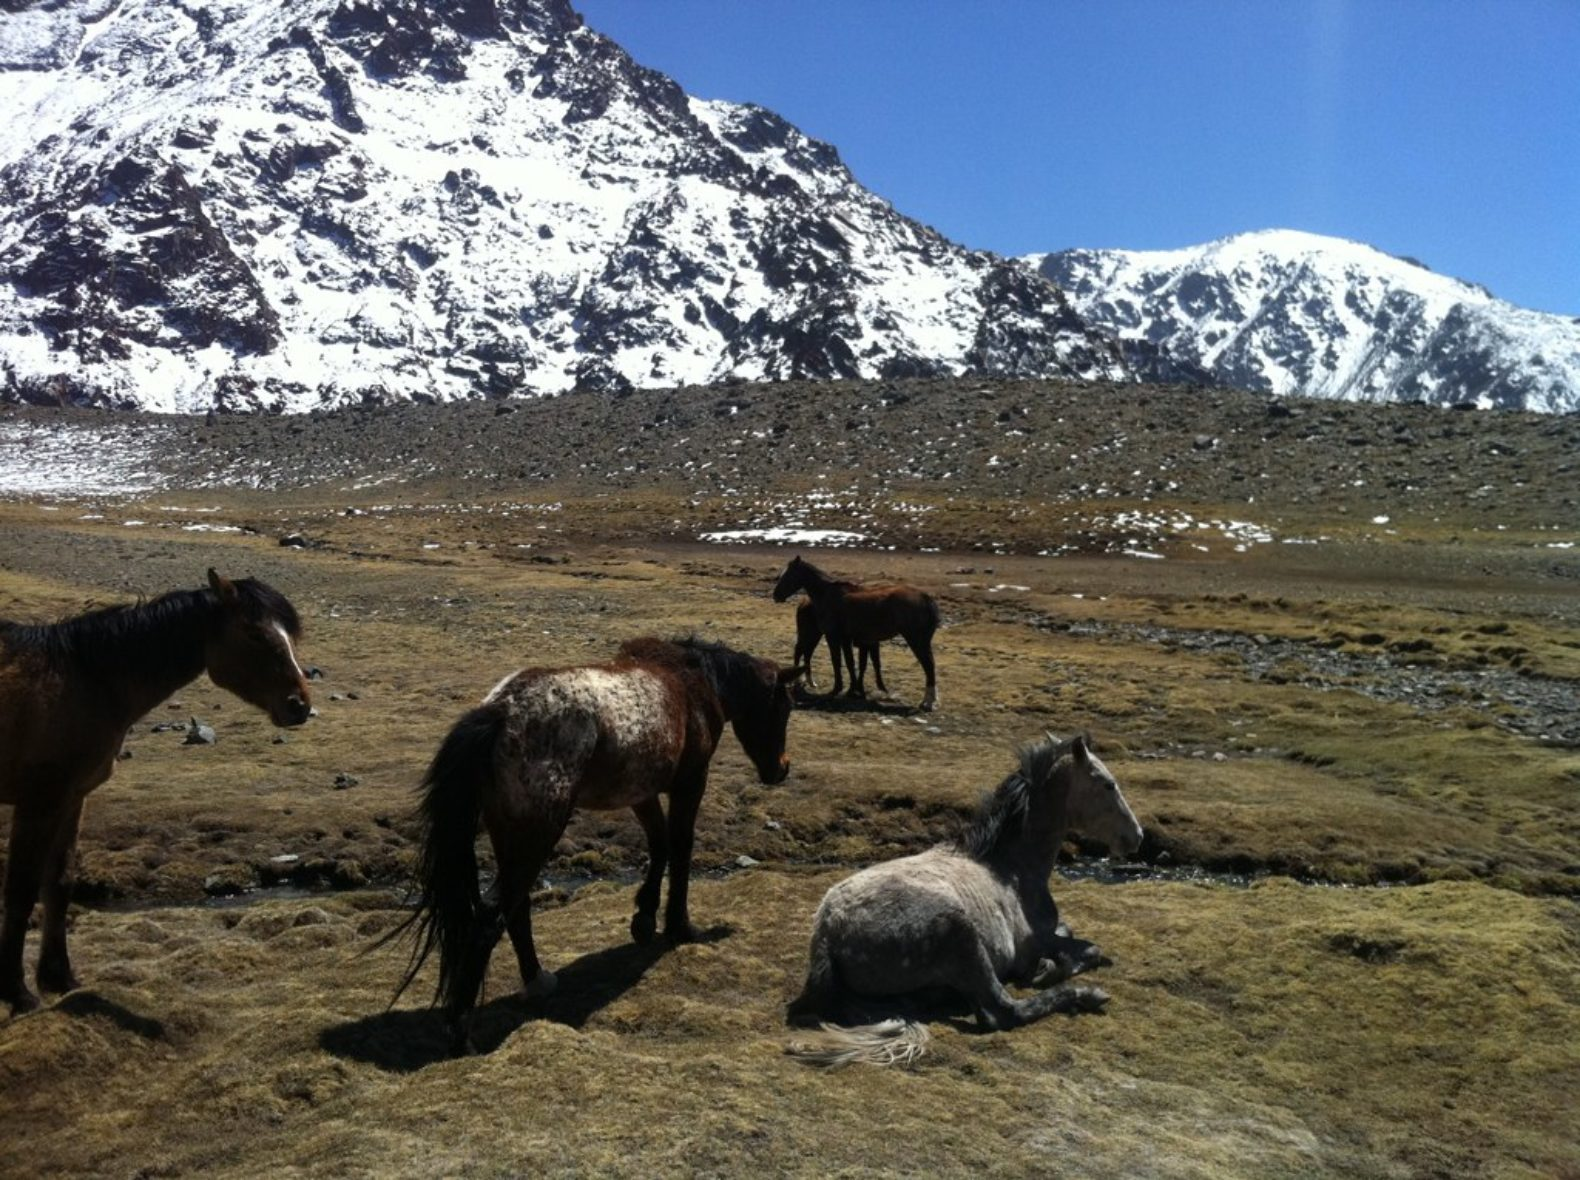 horses-nature-snow-mountains-wildlife-entre-cielos-hamam-spa-argentina